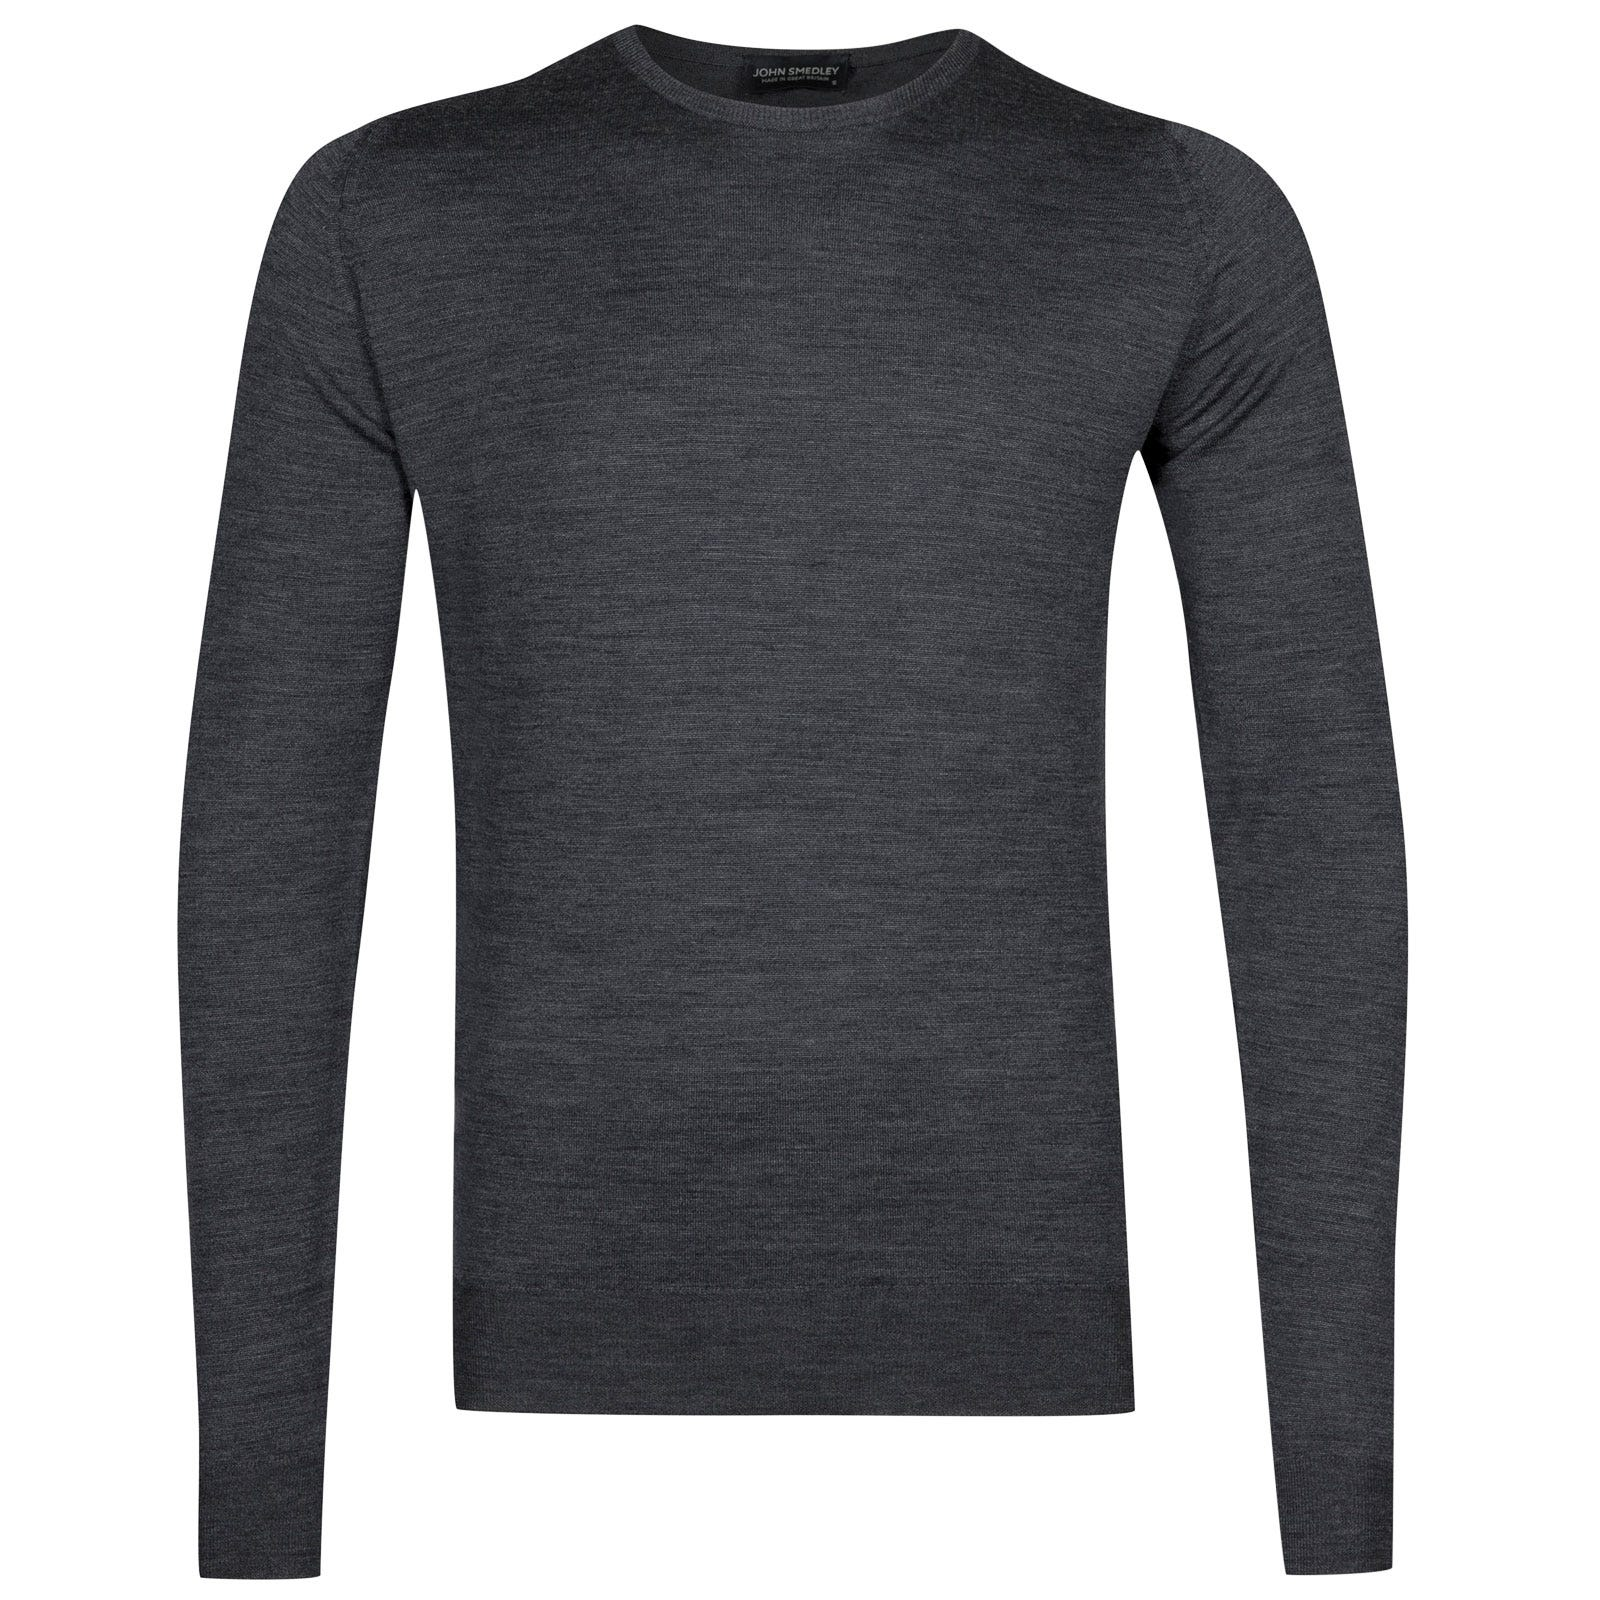 John Smedley lundy Merino Wool Pullover in Charcoal-S